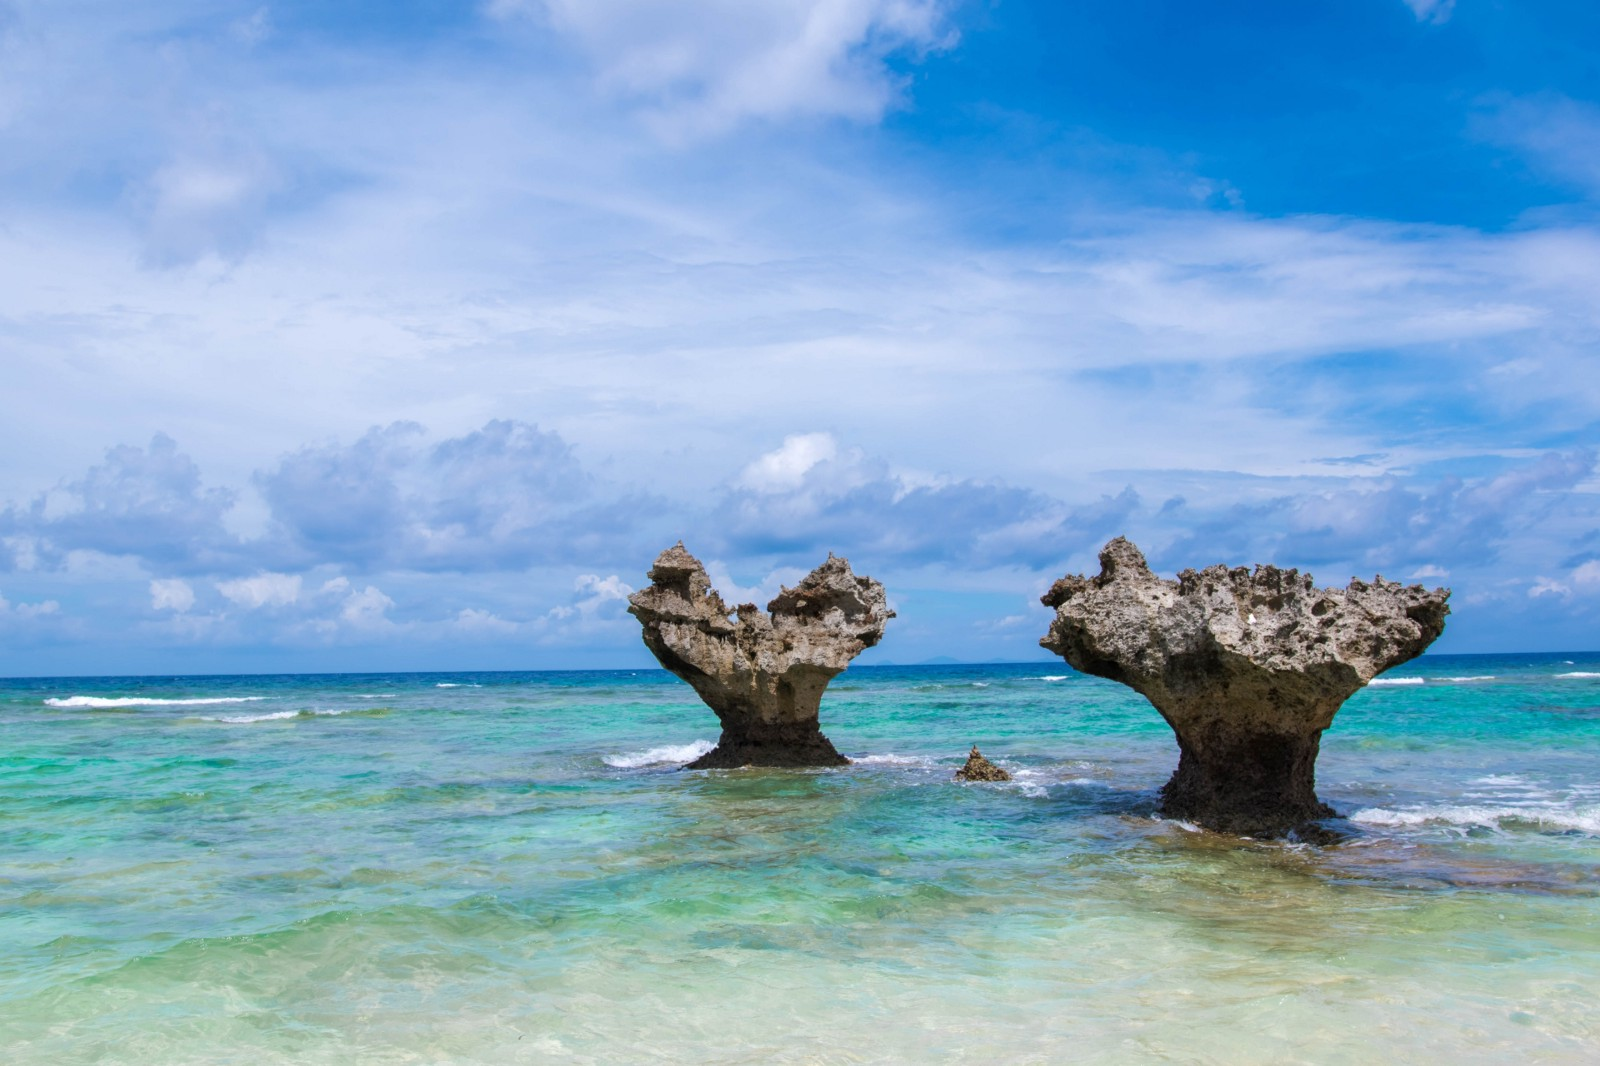 10 Best Beaches on Okinawa Main Island